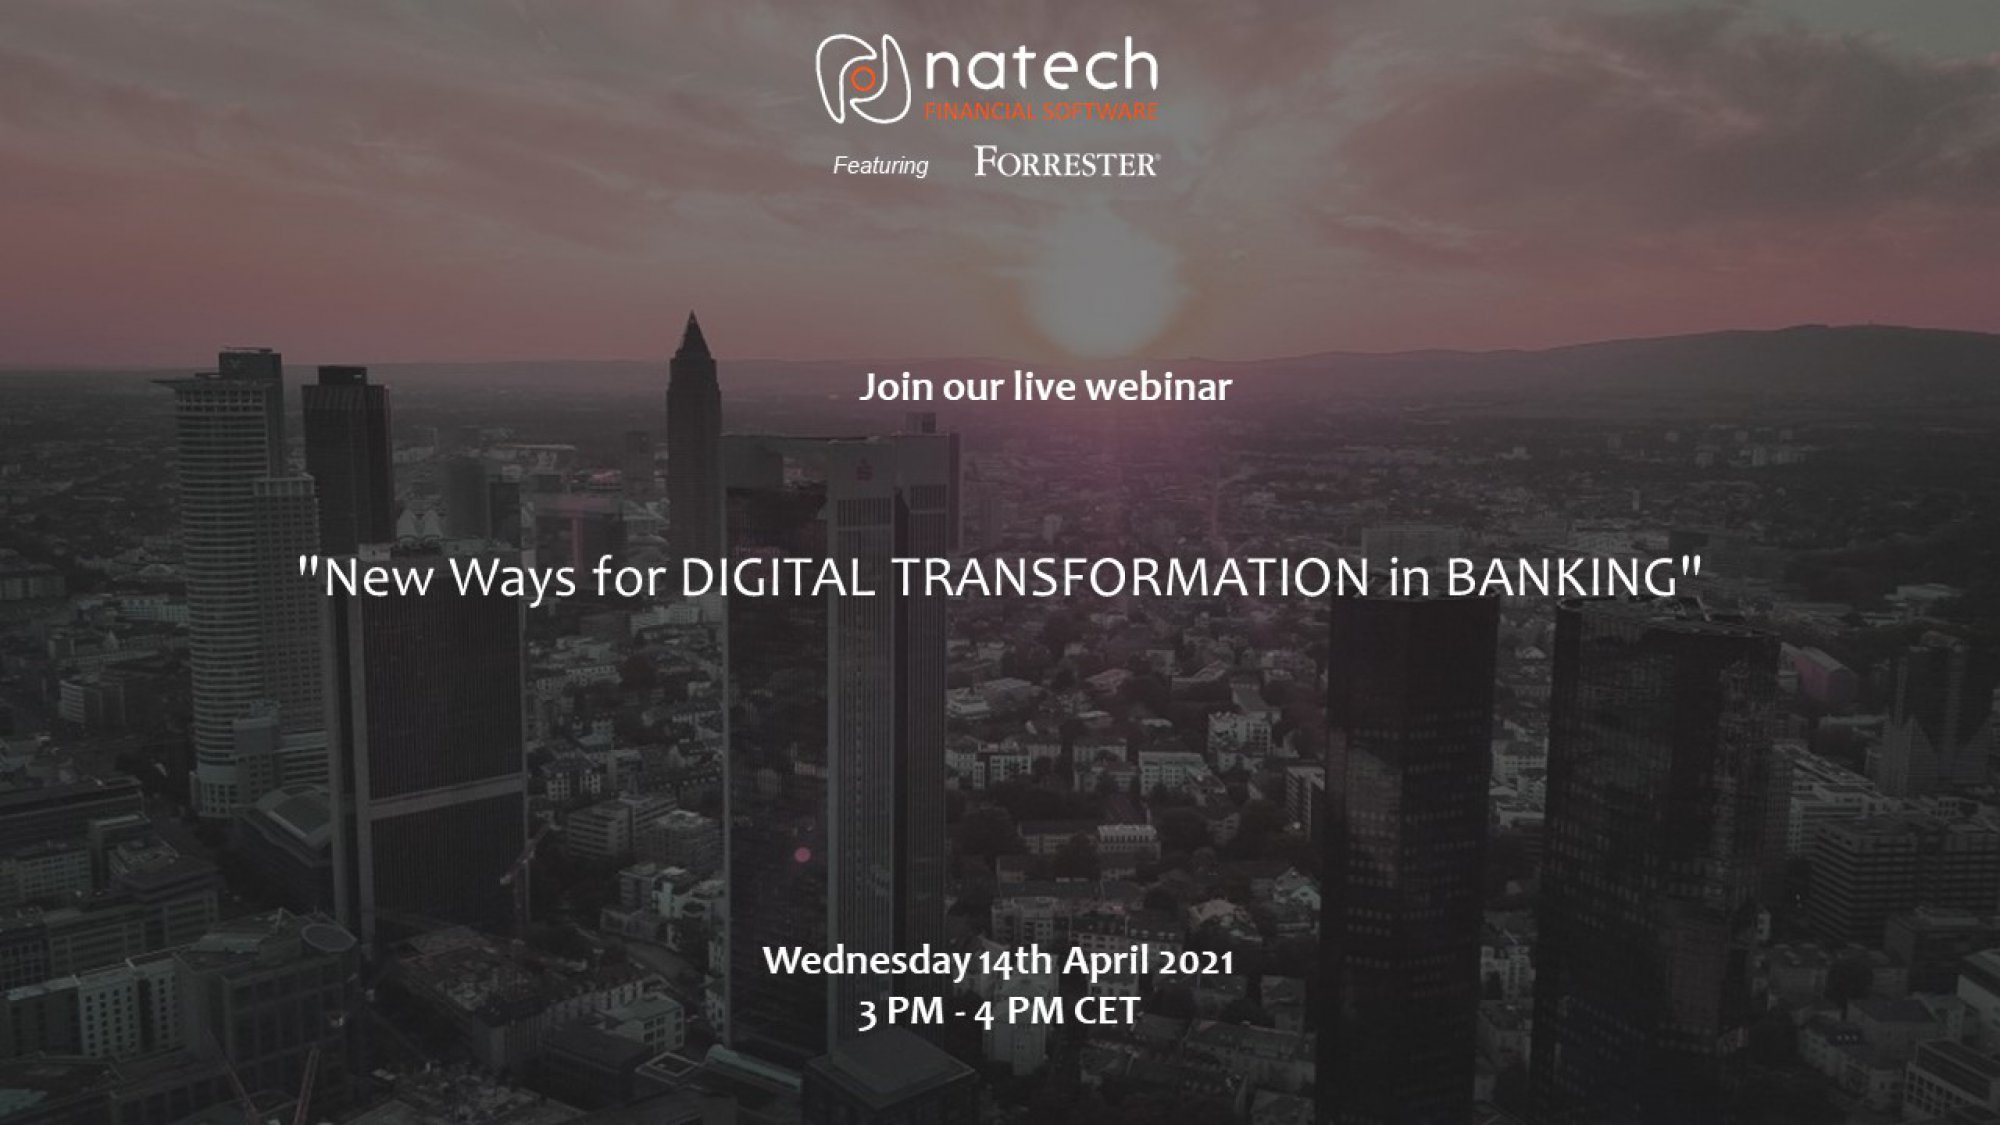 Join Natech's Live Webinar featuring Forrester